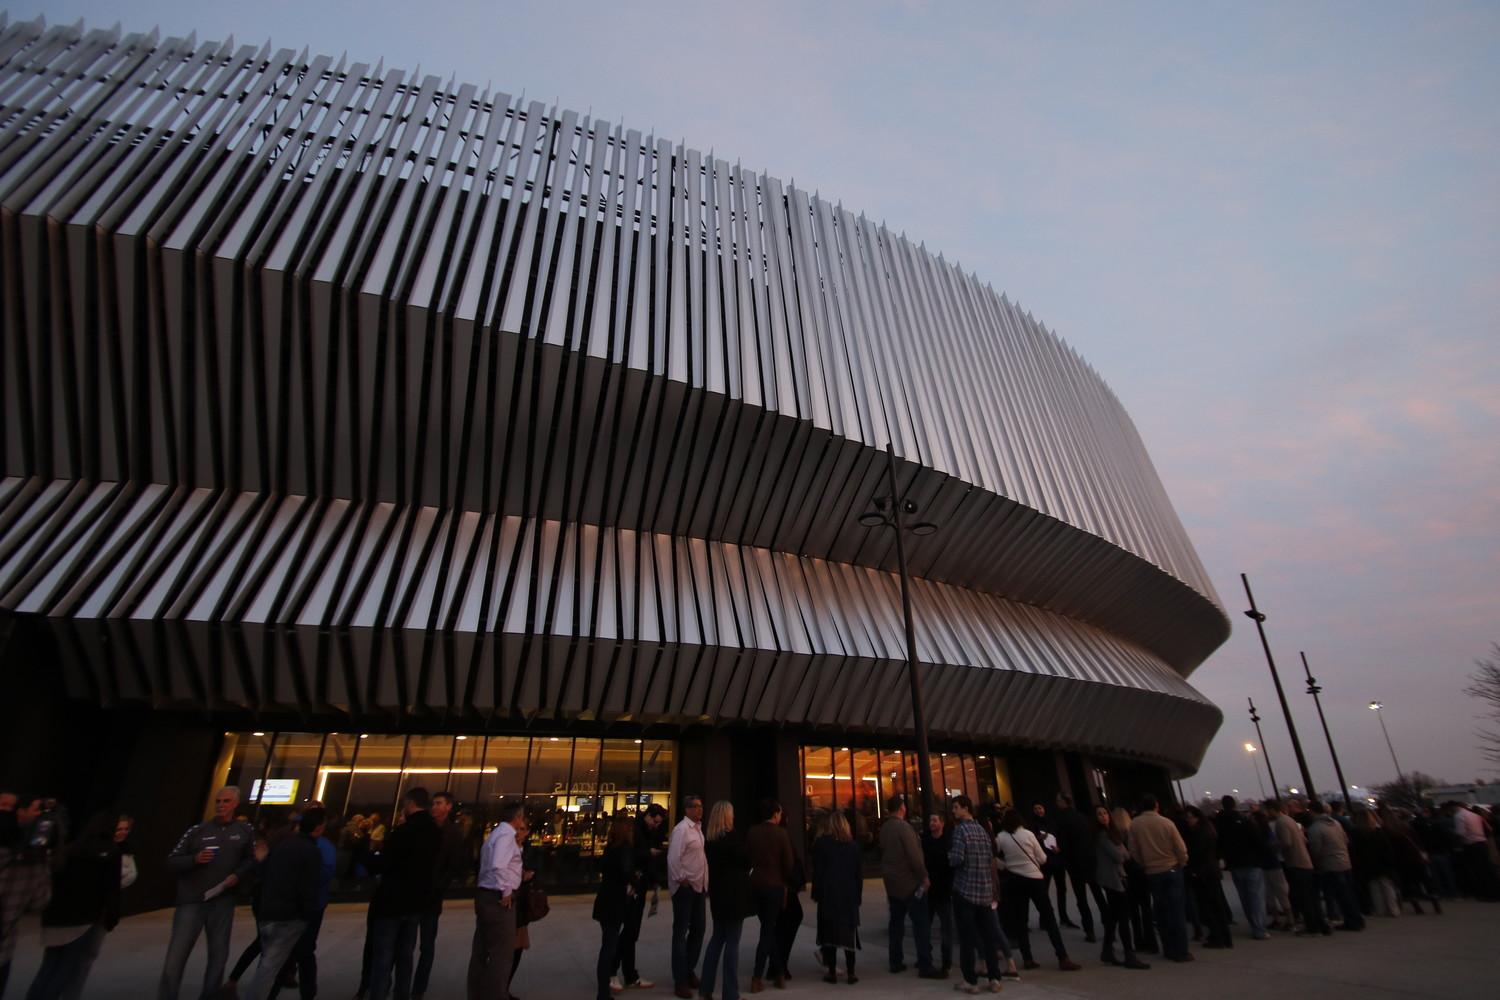 It's business as usual at the renovated Nassau Coliseum — popular acts drawing large crowds — but the discussion of who will develop the surrounding 77 acres of the Nassau Hub, and when, continues.